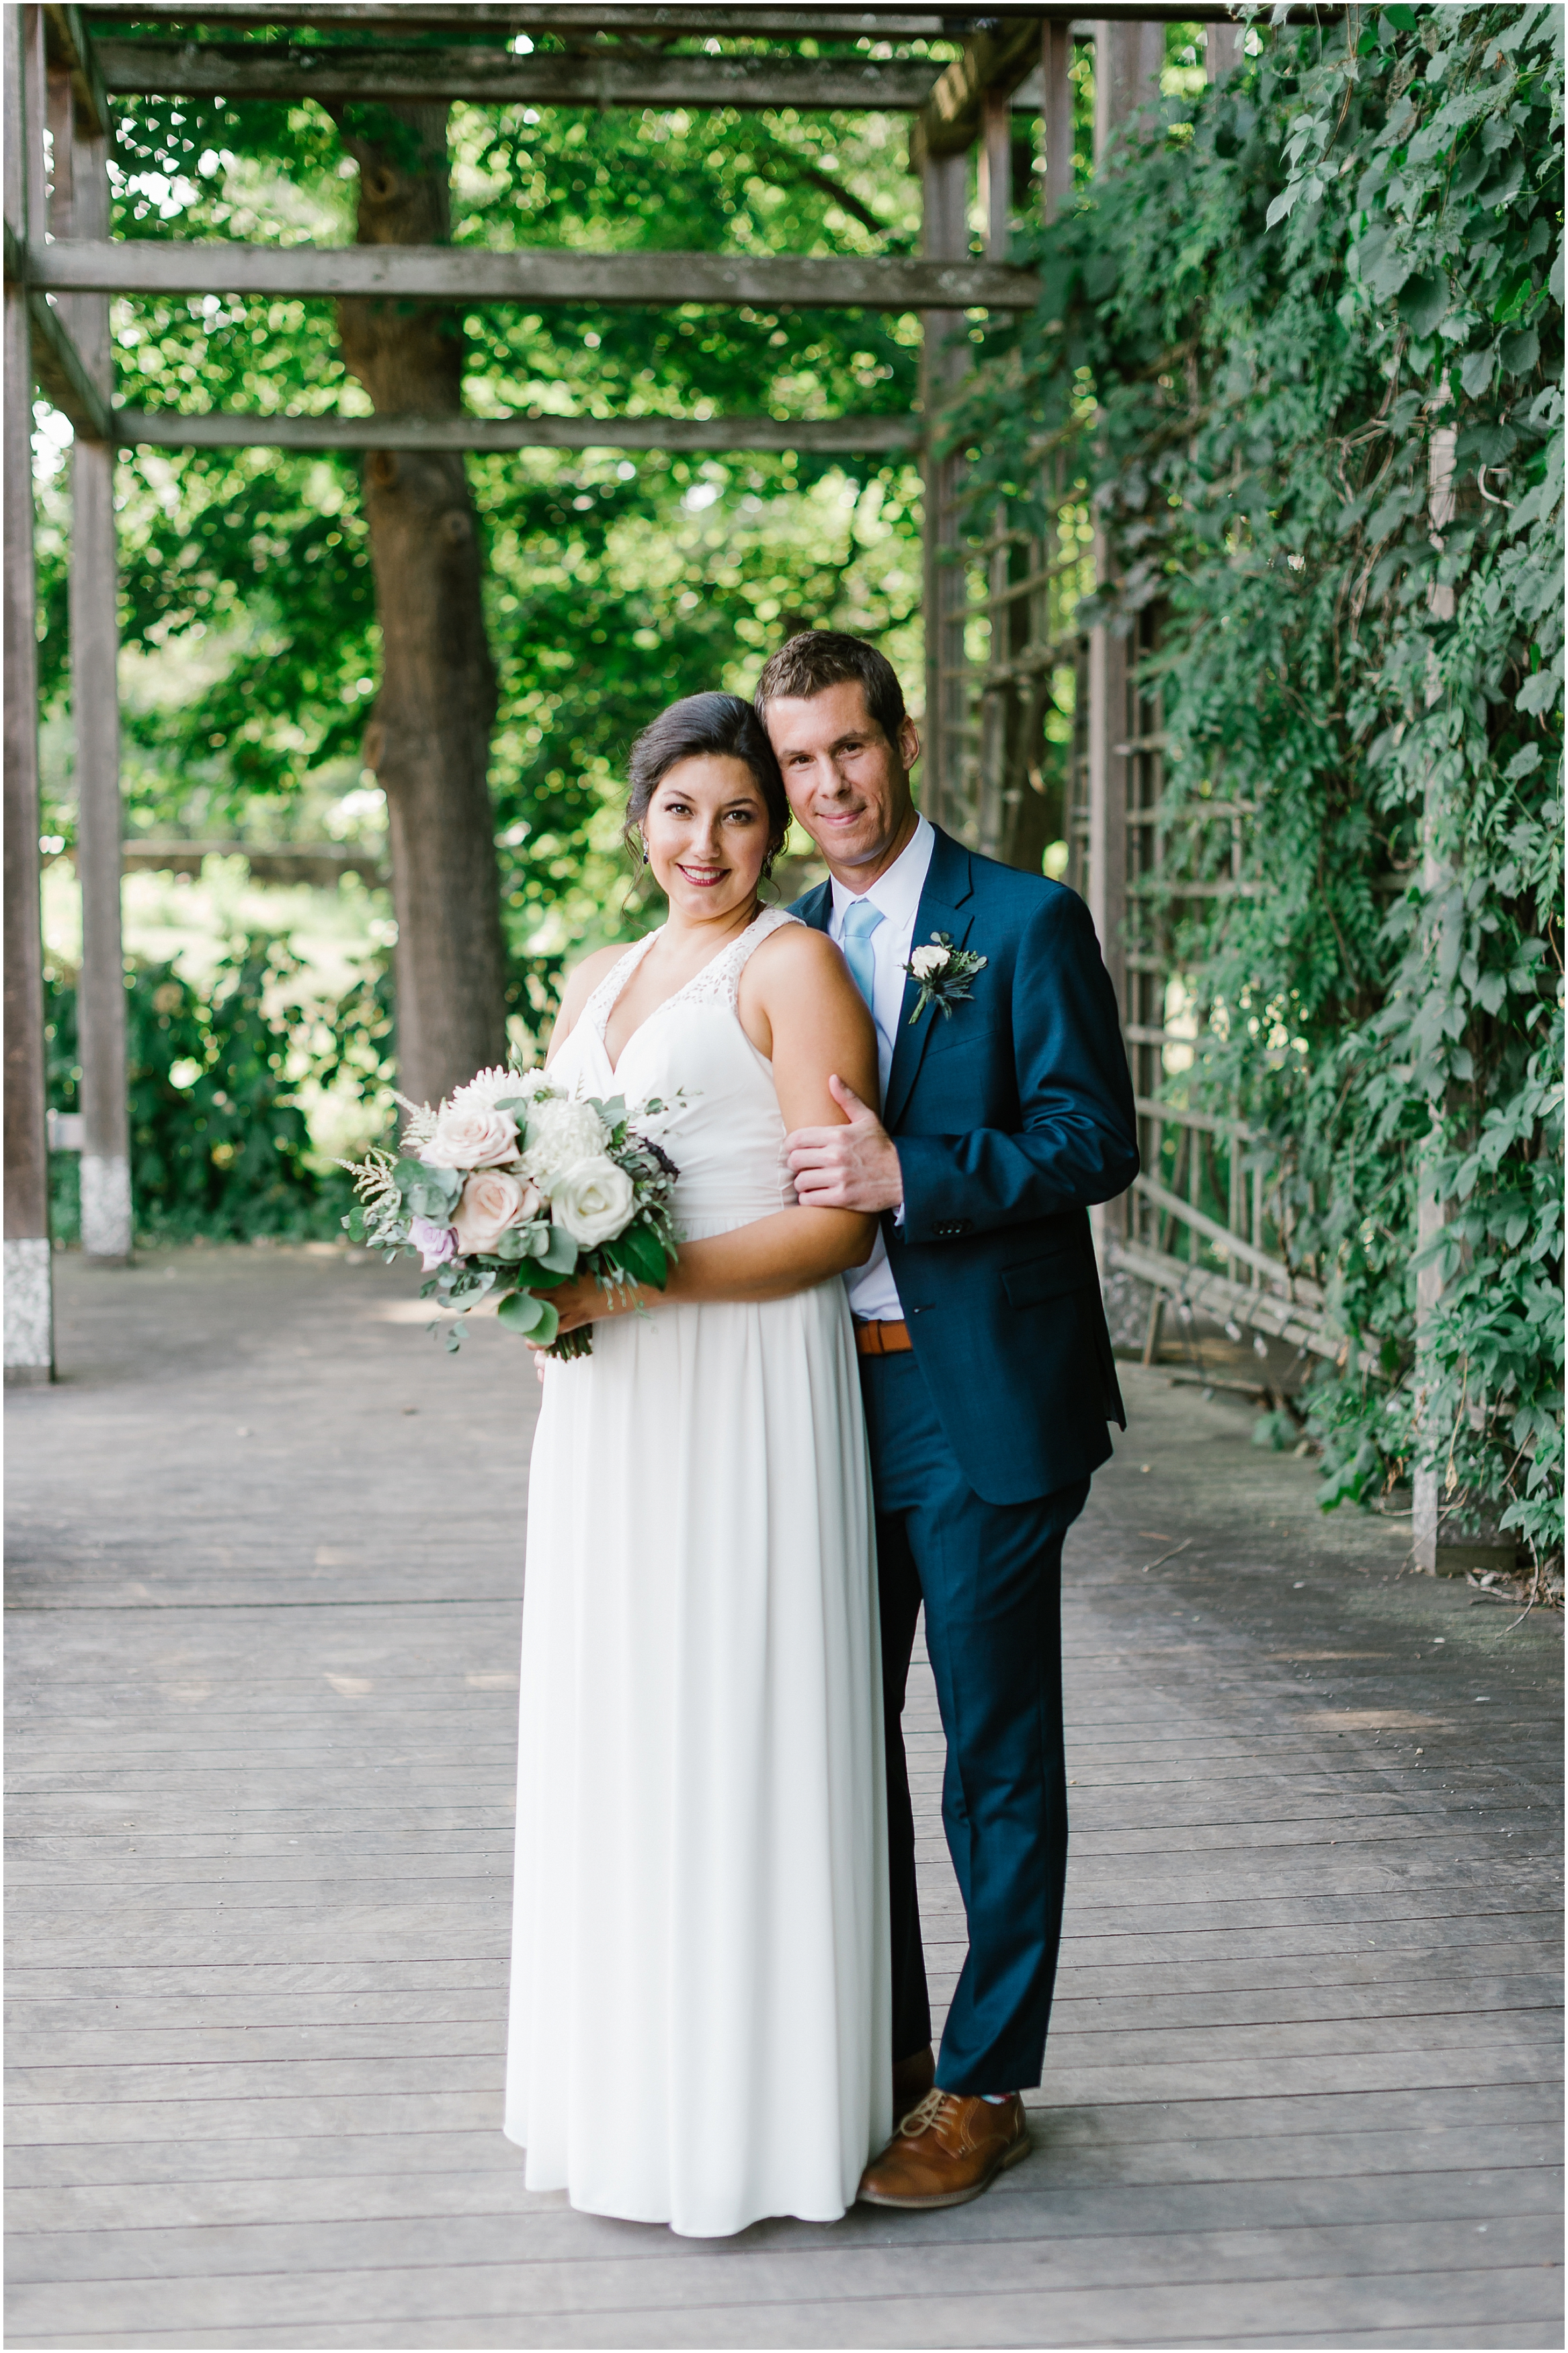 Rebecca Shehorn Photography Indianapolis Wedding Photographer Just Pop In Wedding_0635.jpg